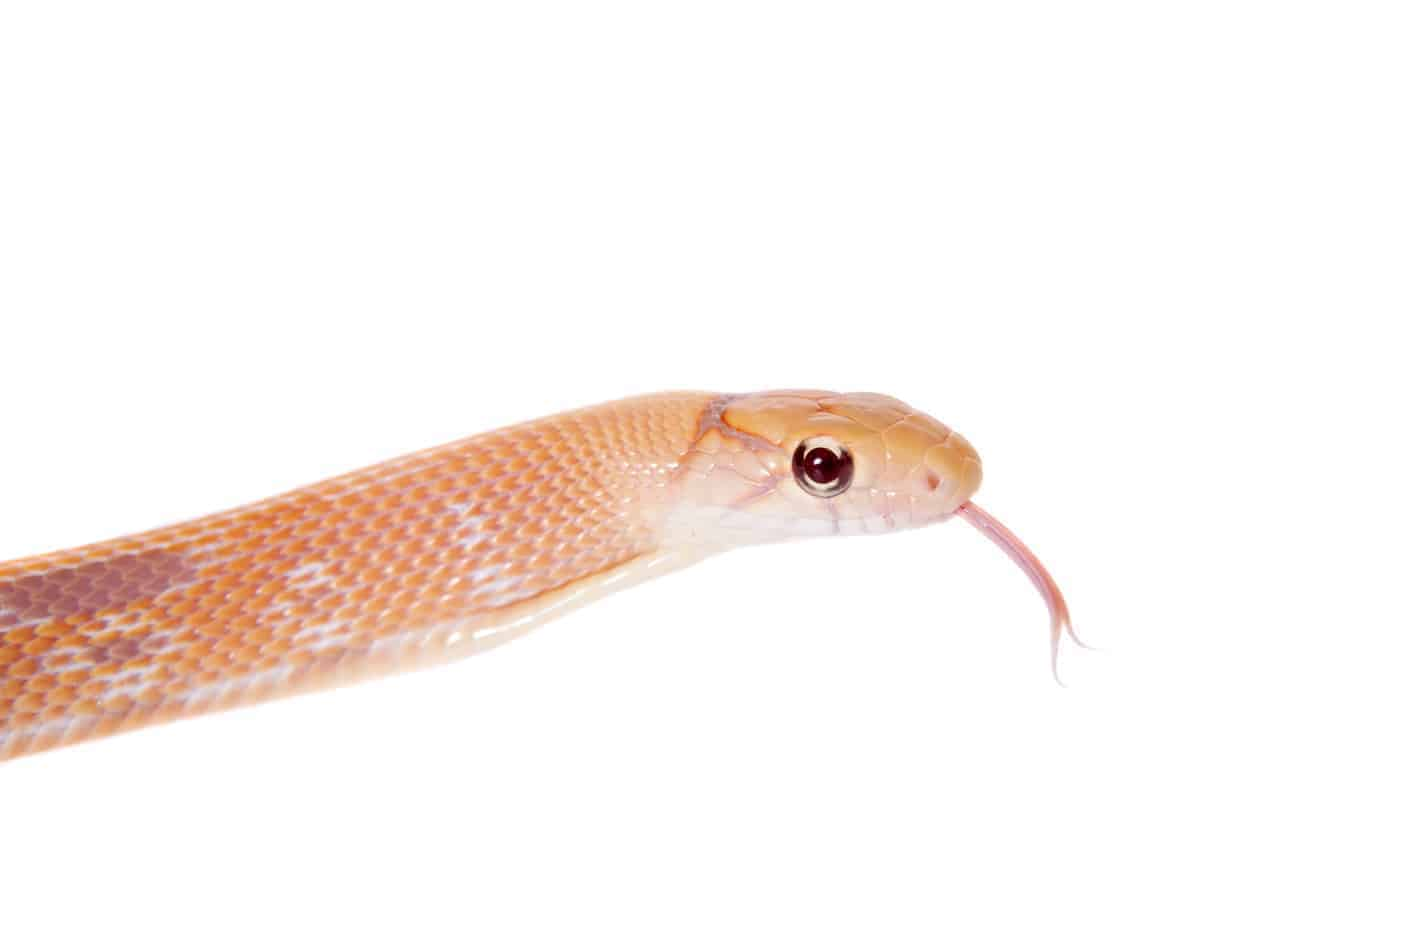 Baby Copperhead Snake Identification Guide (Look for these 5 things!)